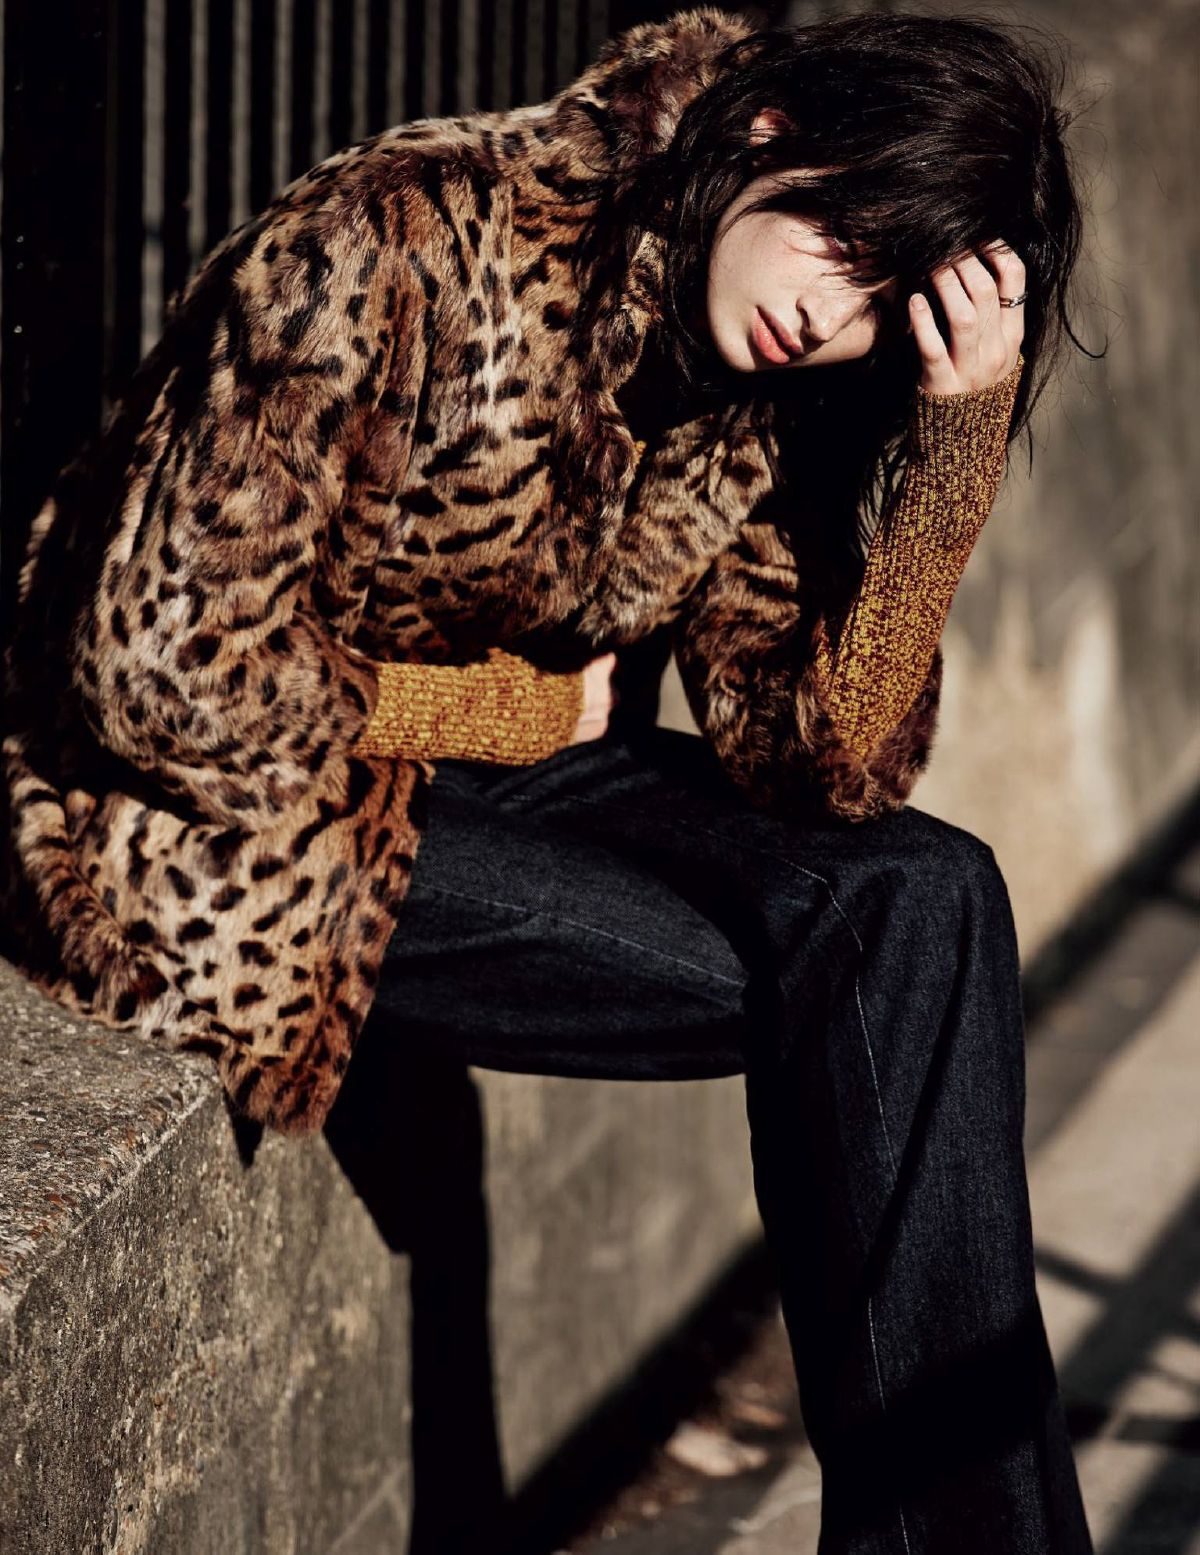 anna lund by paolo zerbini for vogue russia november 2014